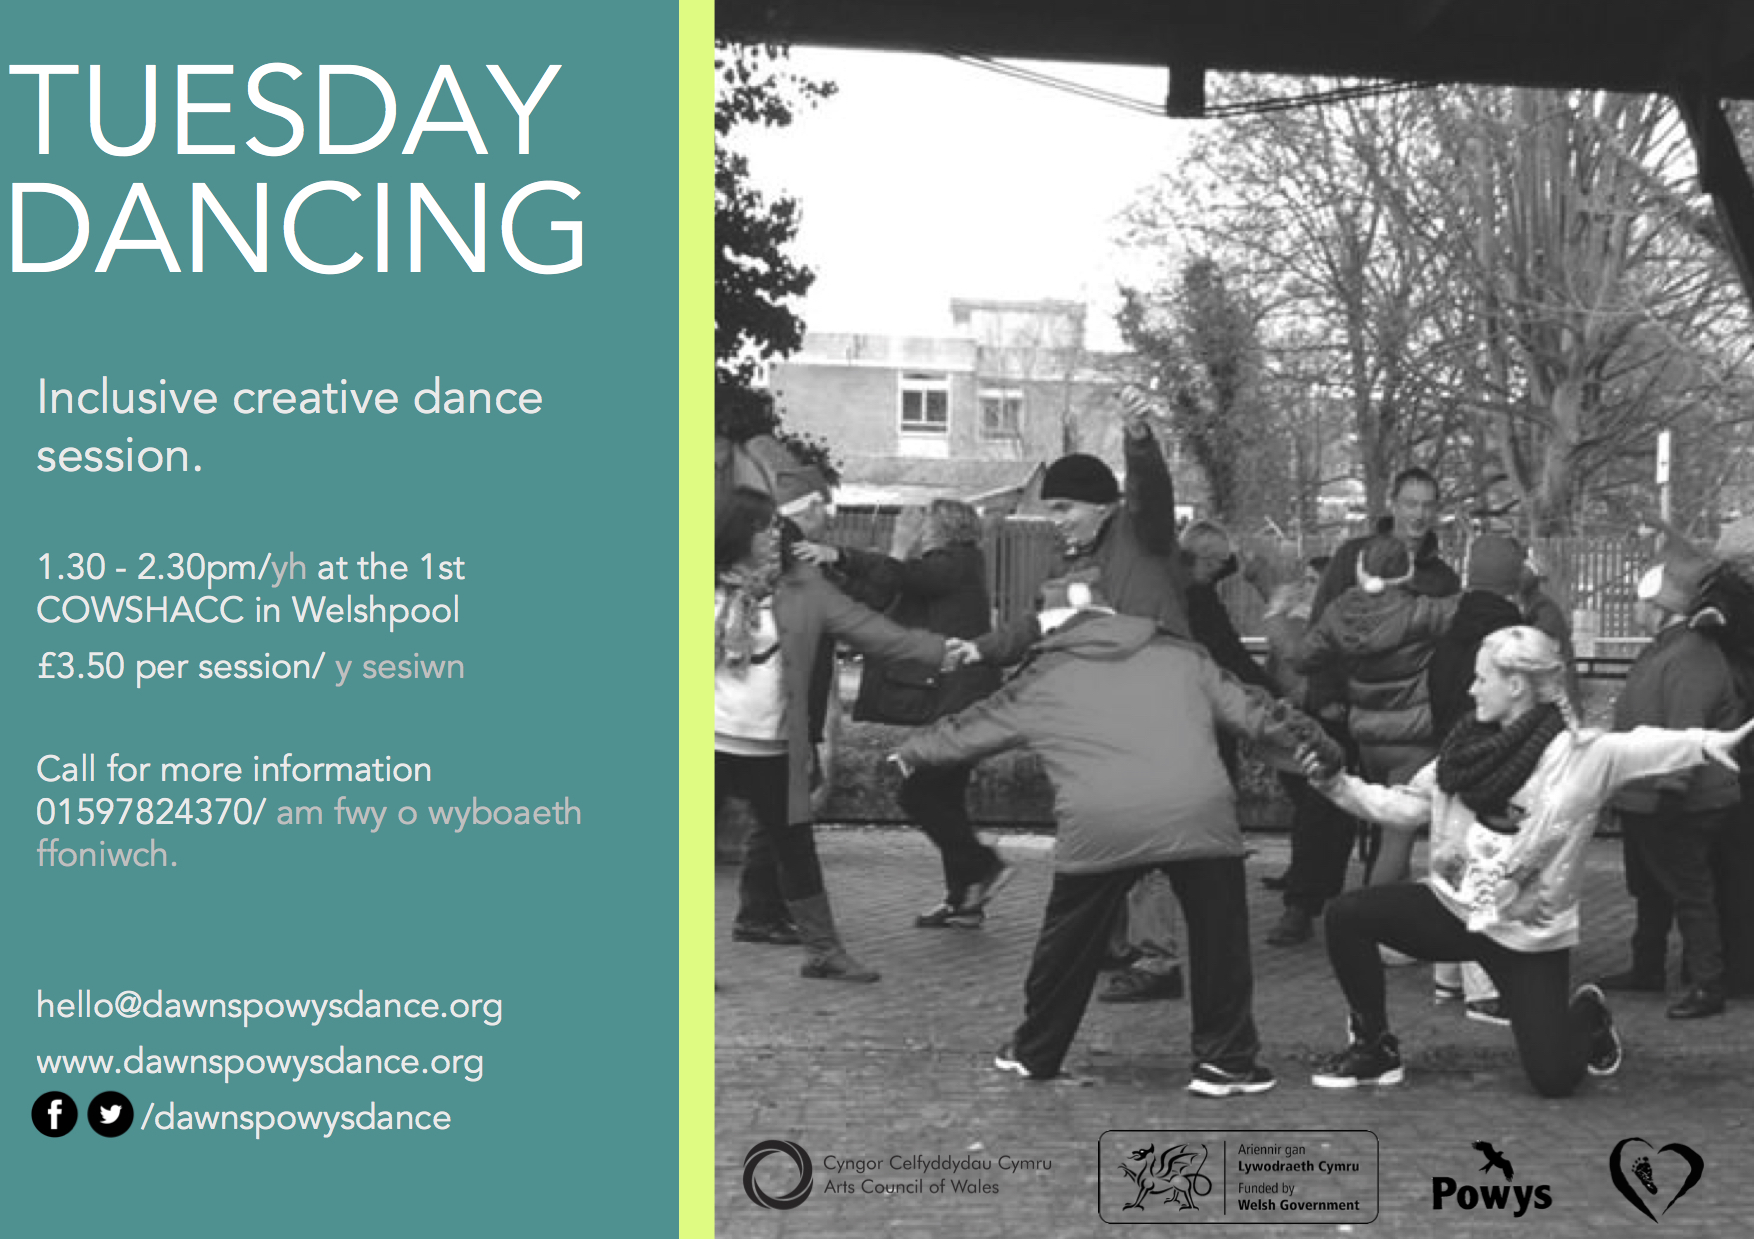 TUESDAY DANCING 15_16